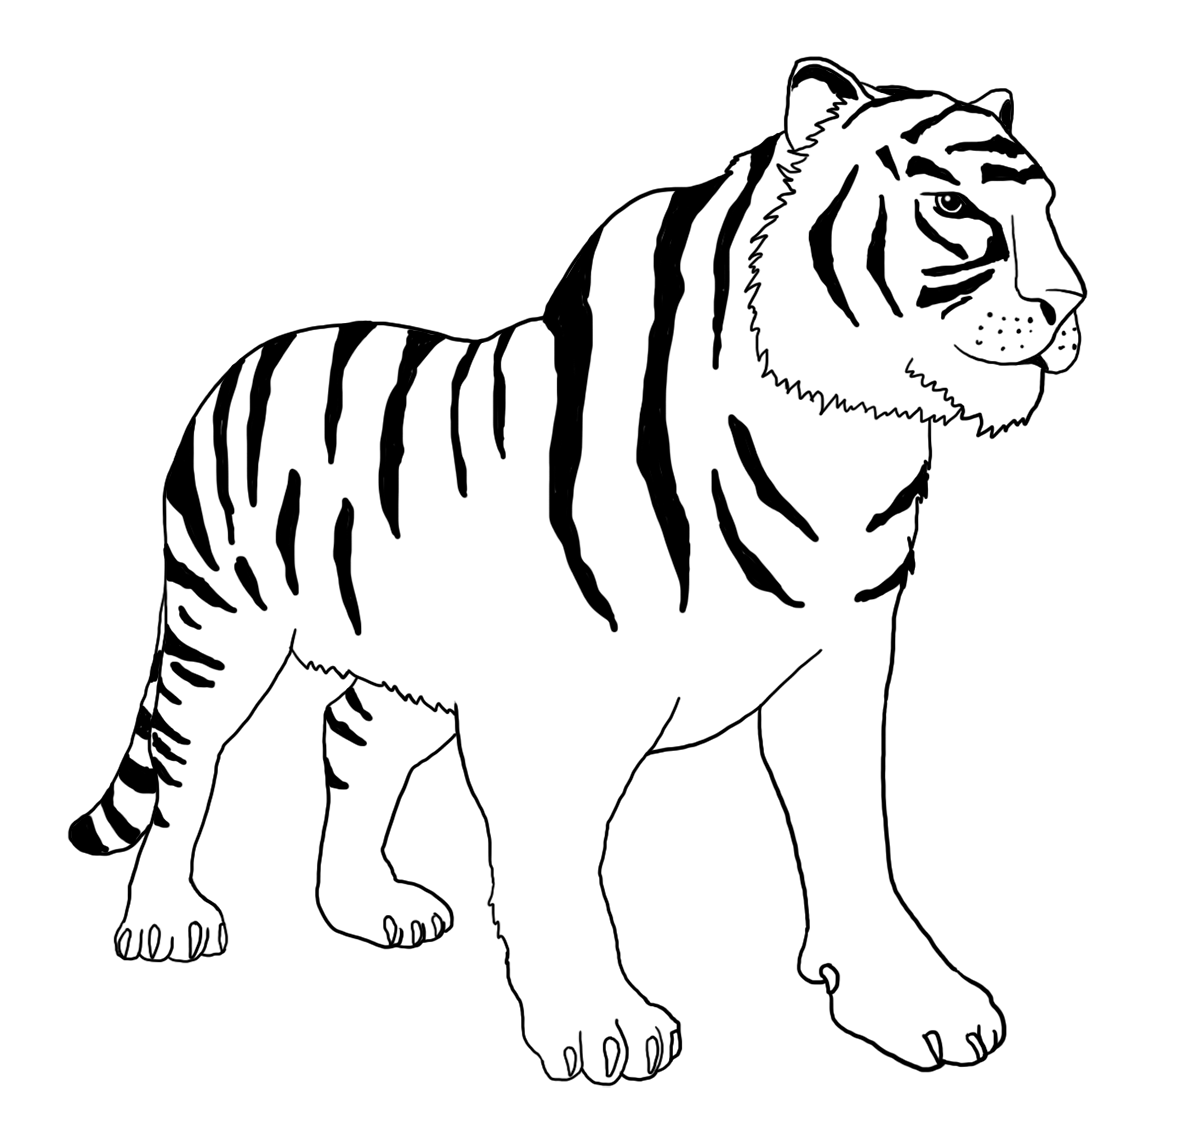 tiger without stripes coloring page tiger coloring pages stripes tiger coloring without page